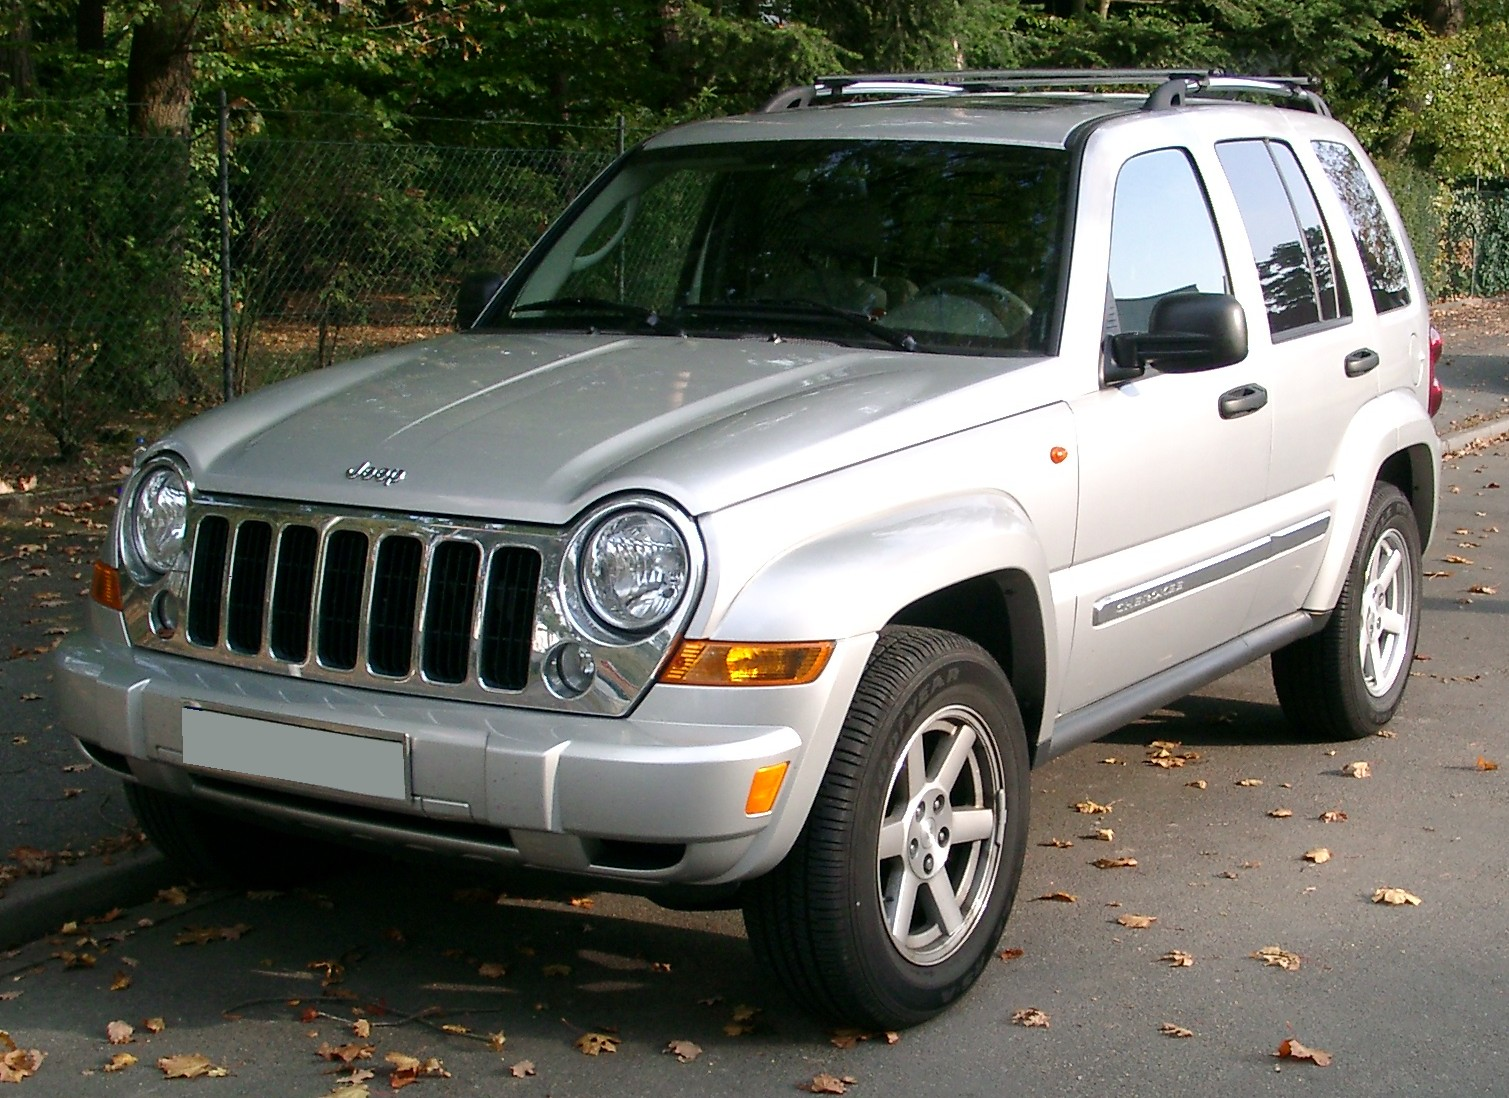 file:jeep cherokee front 20071004 - wikimedia commons